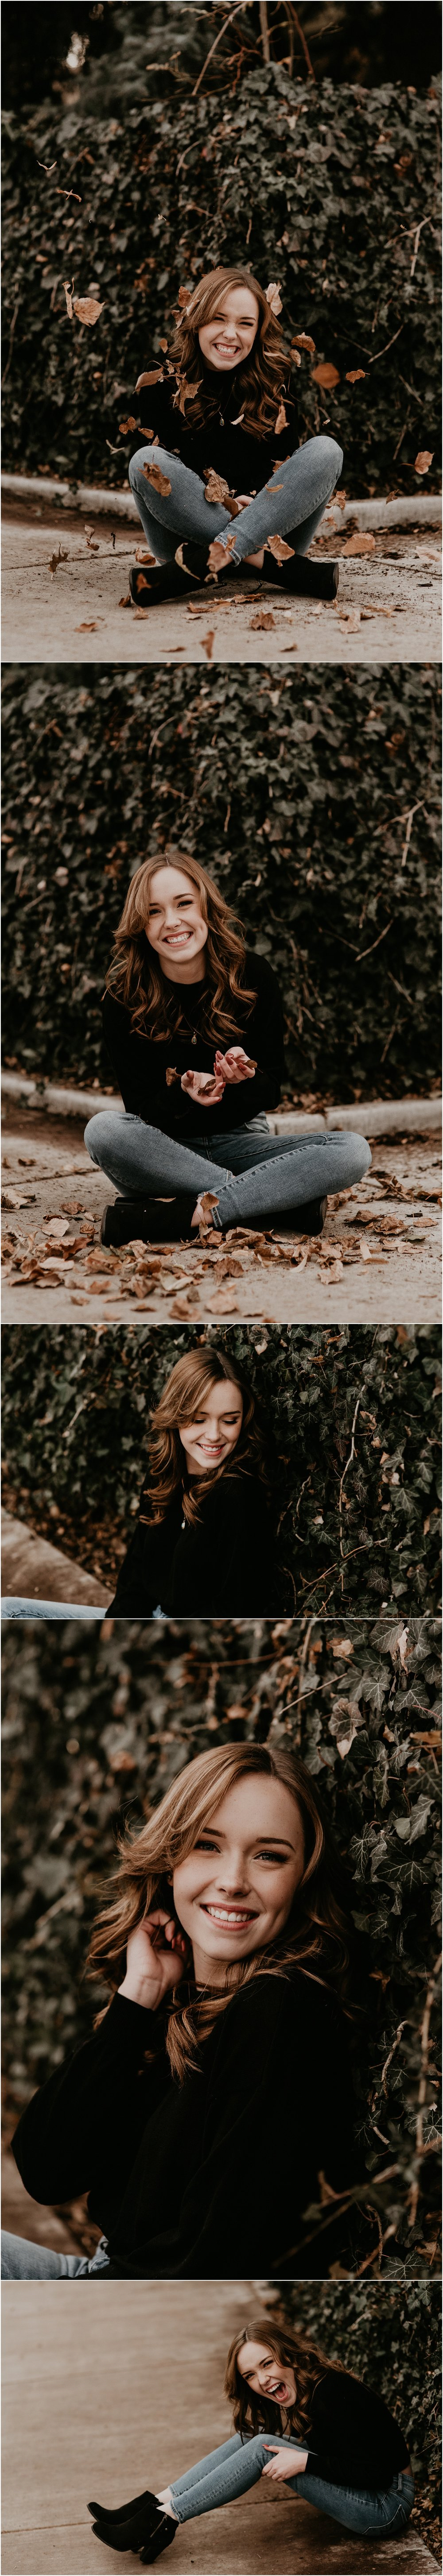 Boise Senior Photographer Makayla Madden Photography Downtown Boise Hyde Park Senior Session Boise Photography Spot Graduate Fun Urban Senior Picture Outfit Ideas Fall Senior Session